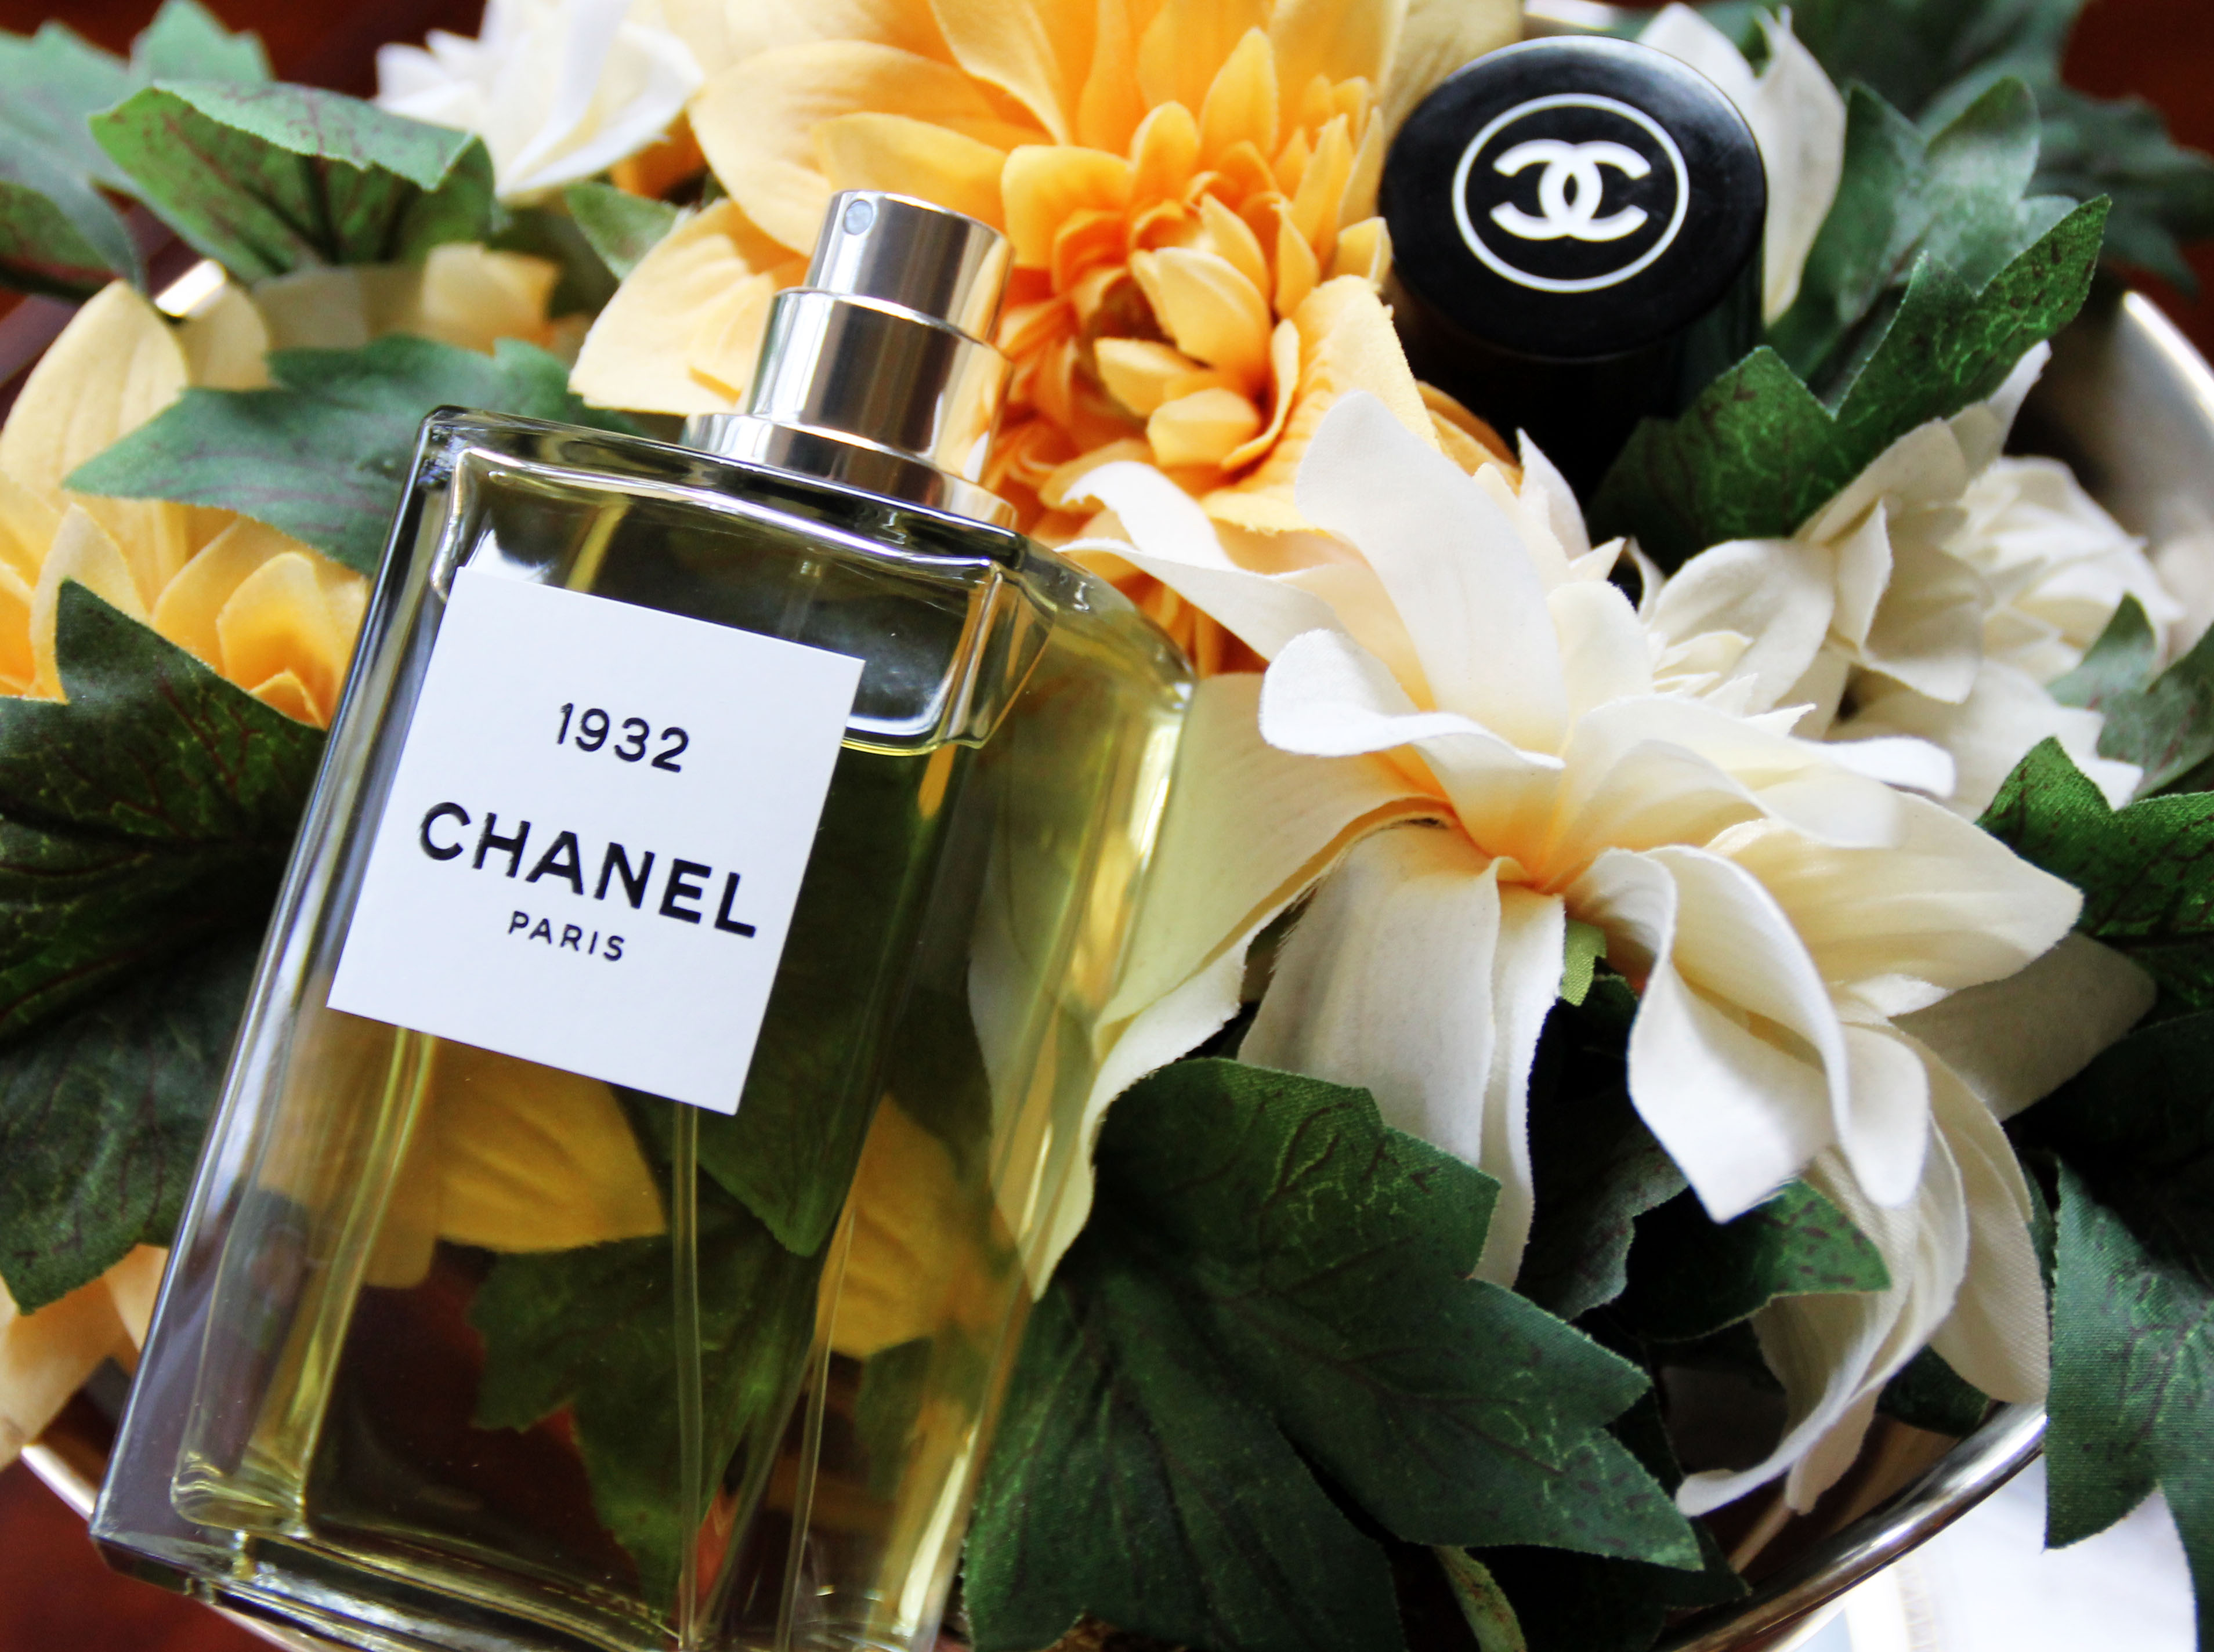 CHANEL LES EXCLUSIFS 1932 ОТ CHANEL